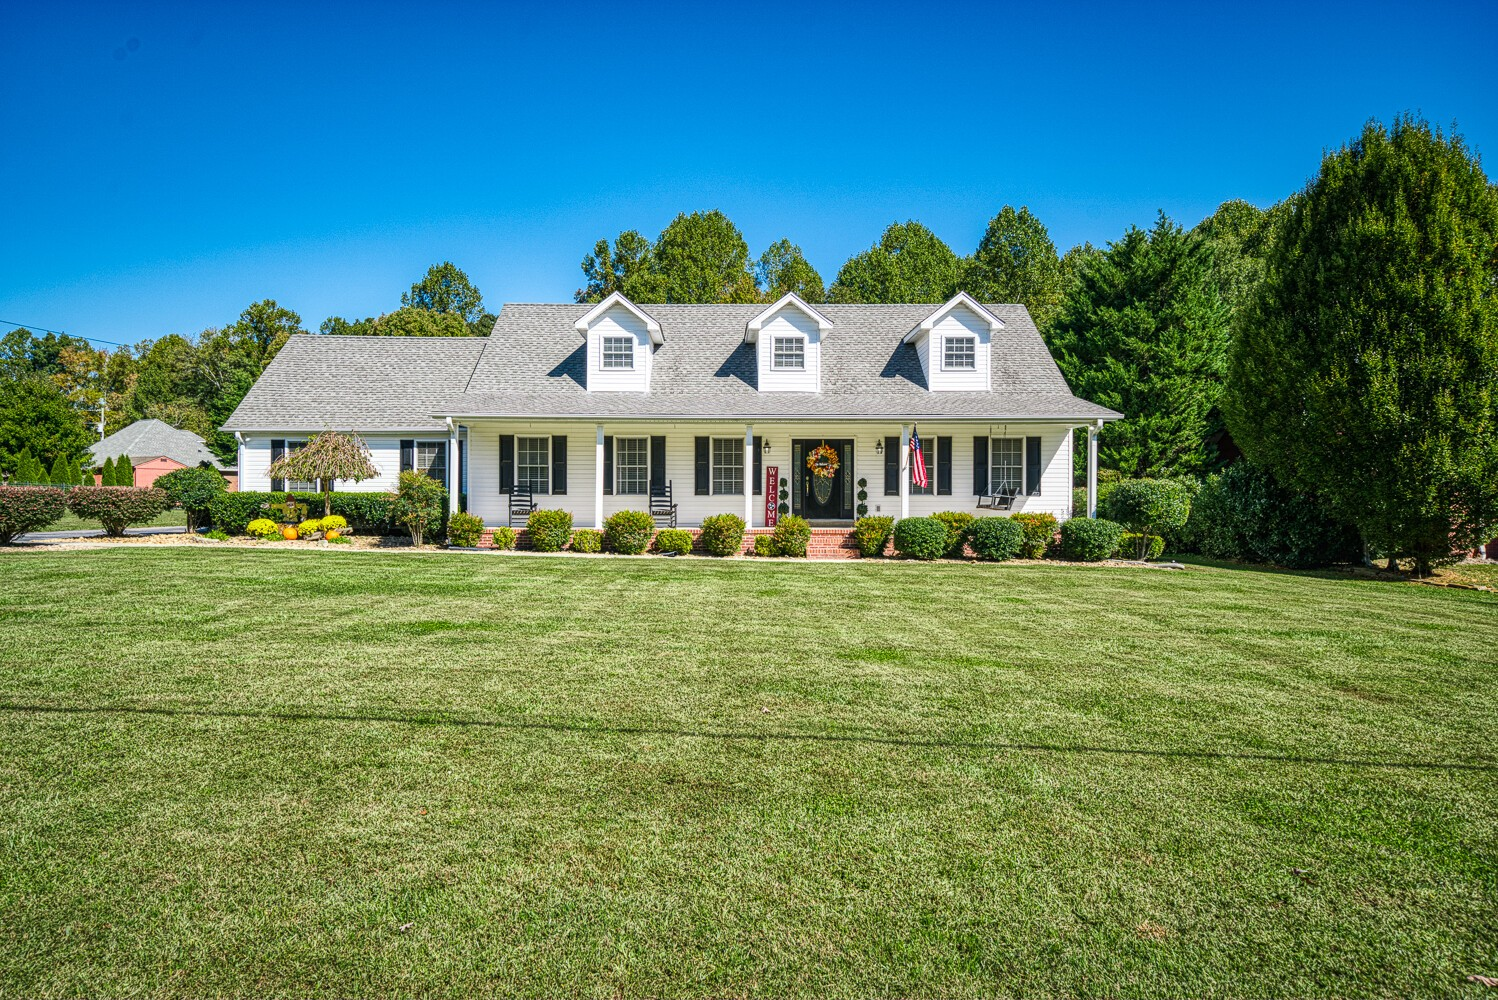 278 Andrew Jackson Blvd Property Photo - Dowelltown, TN real estate listing